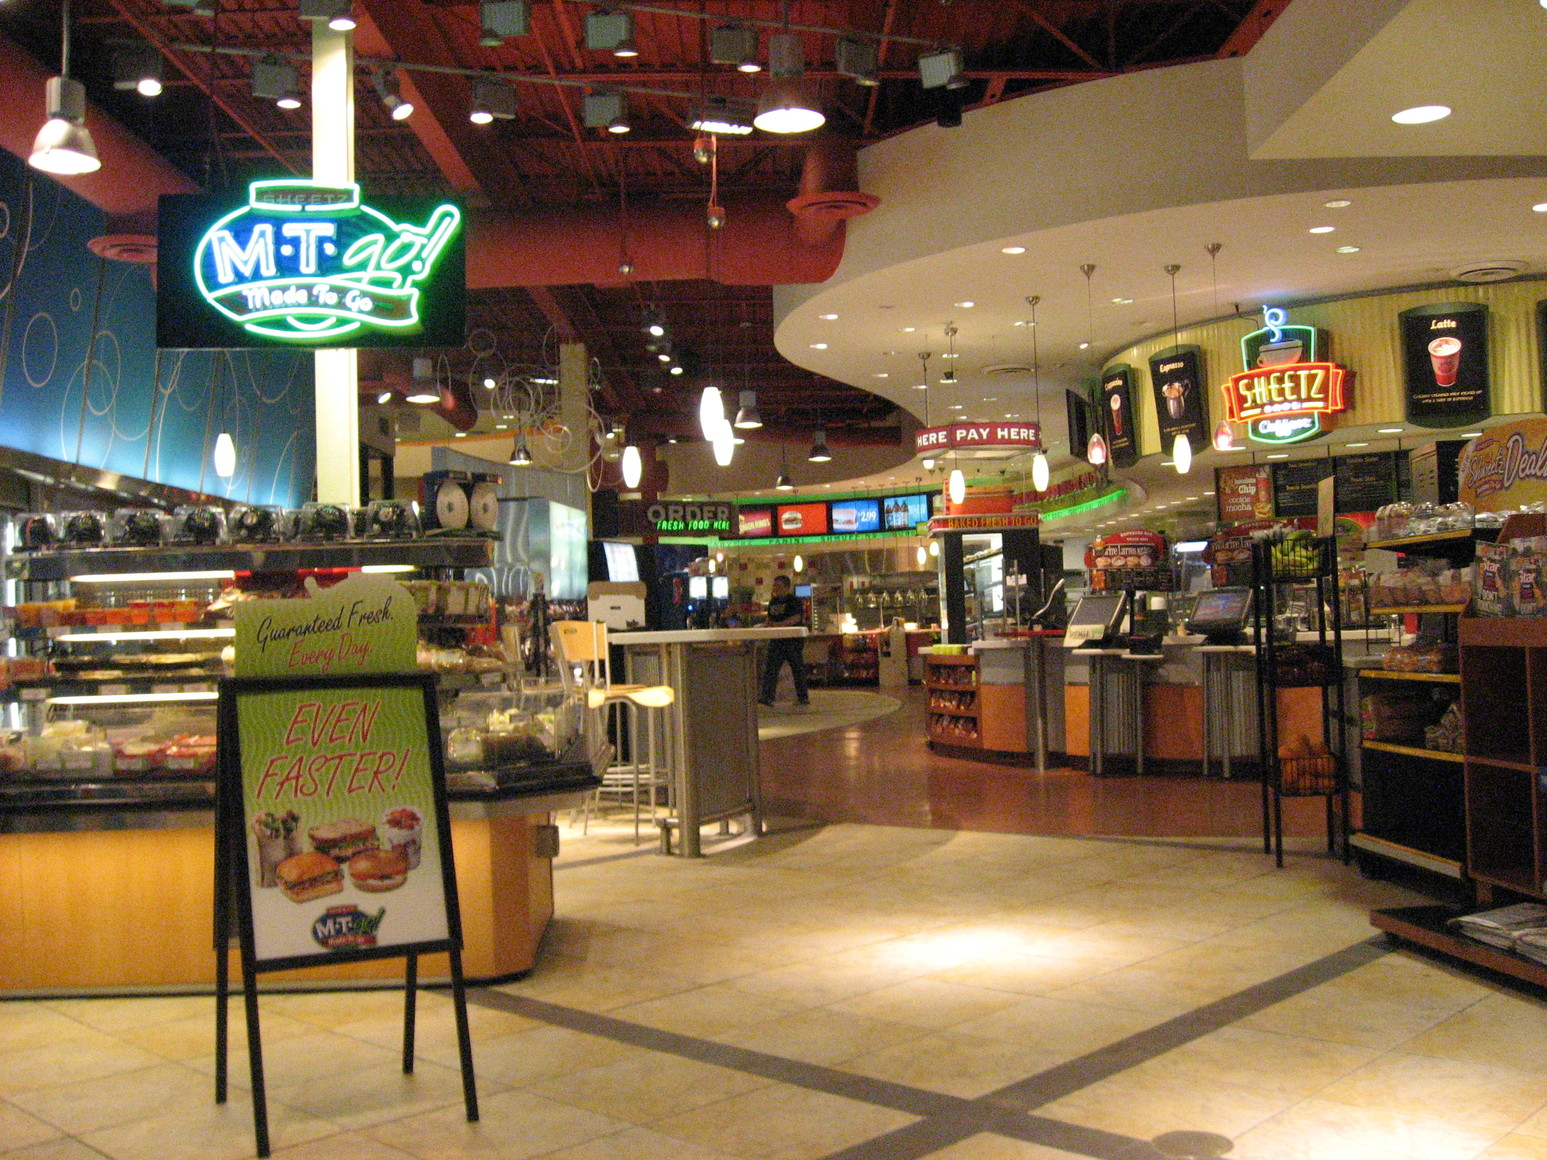 Sheetz To Open Store On Pugh Street In Fall 2015 on Penn State Library Floor Plan